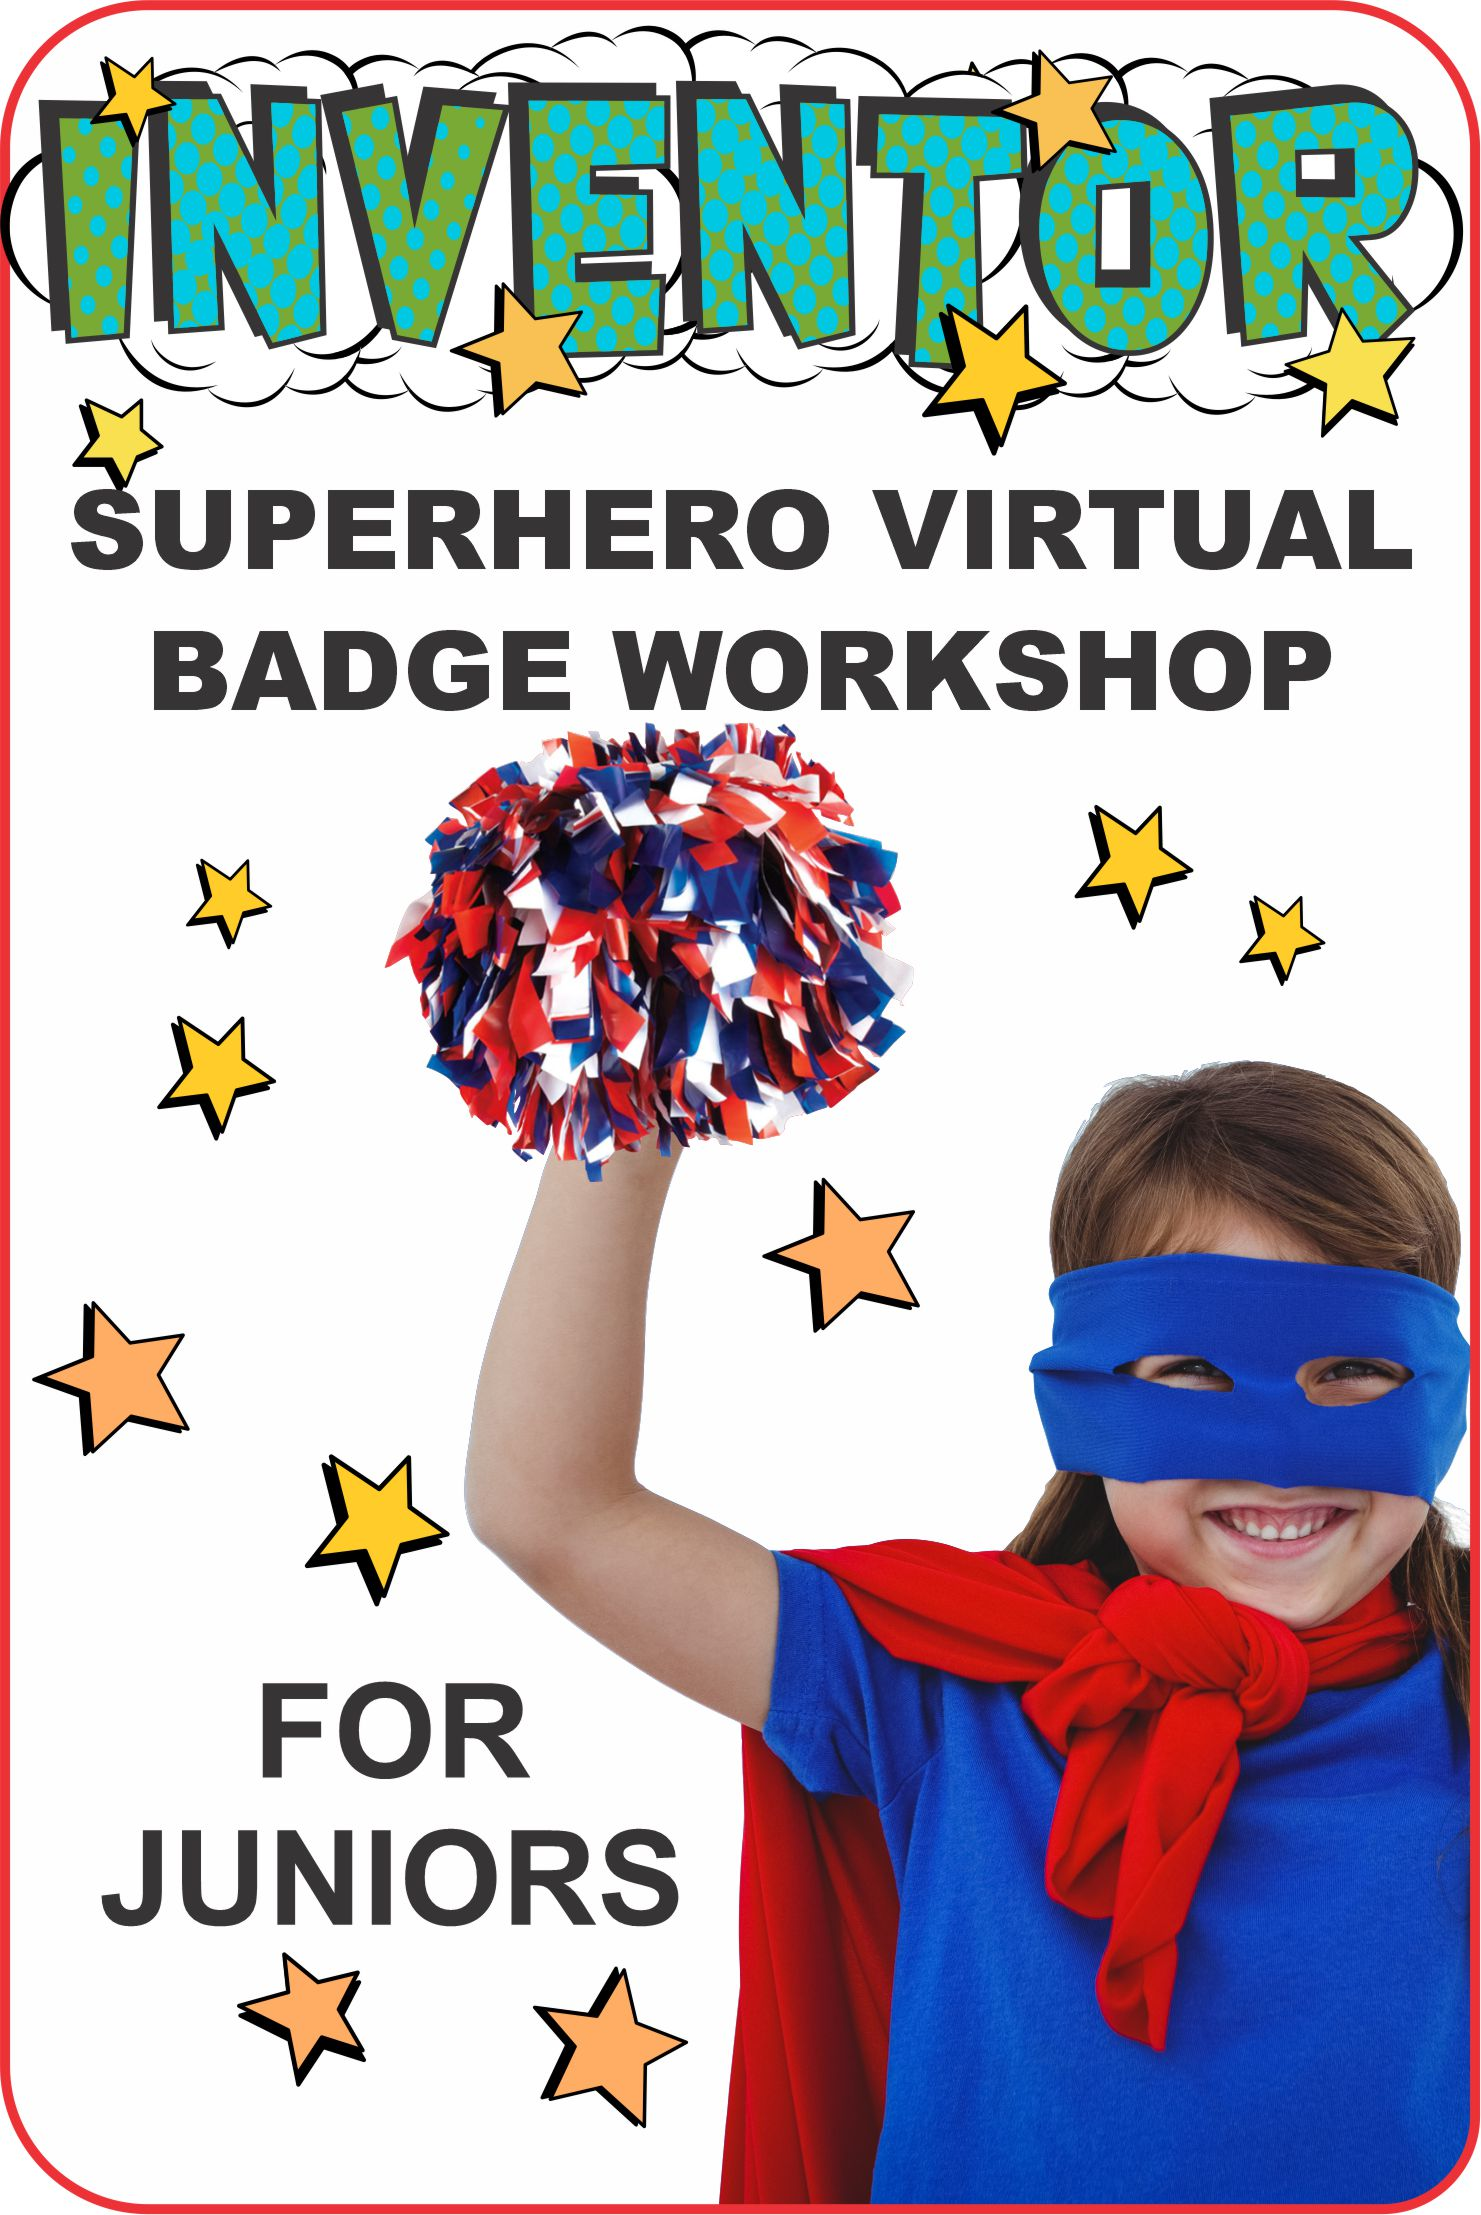 Join Jackie and Superhero Seraphina in this fun inventor workshop! Seraphina is smart she loves to invent new things AND she loves to cheer! #makingfriends #superhero #virtualclass #inventor #inventing #girlscoutsinventor #girlscouts #gs #badges #gsbadges via @gsleader411